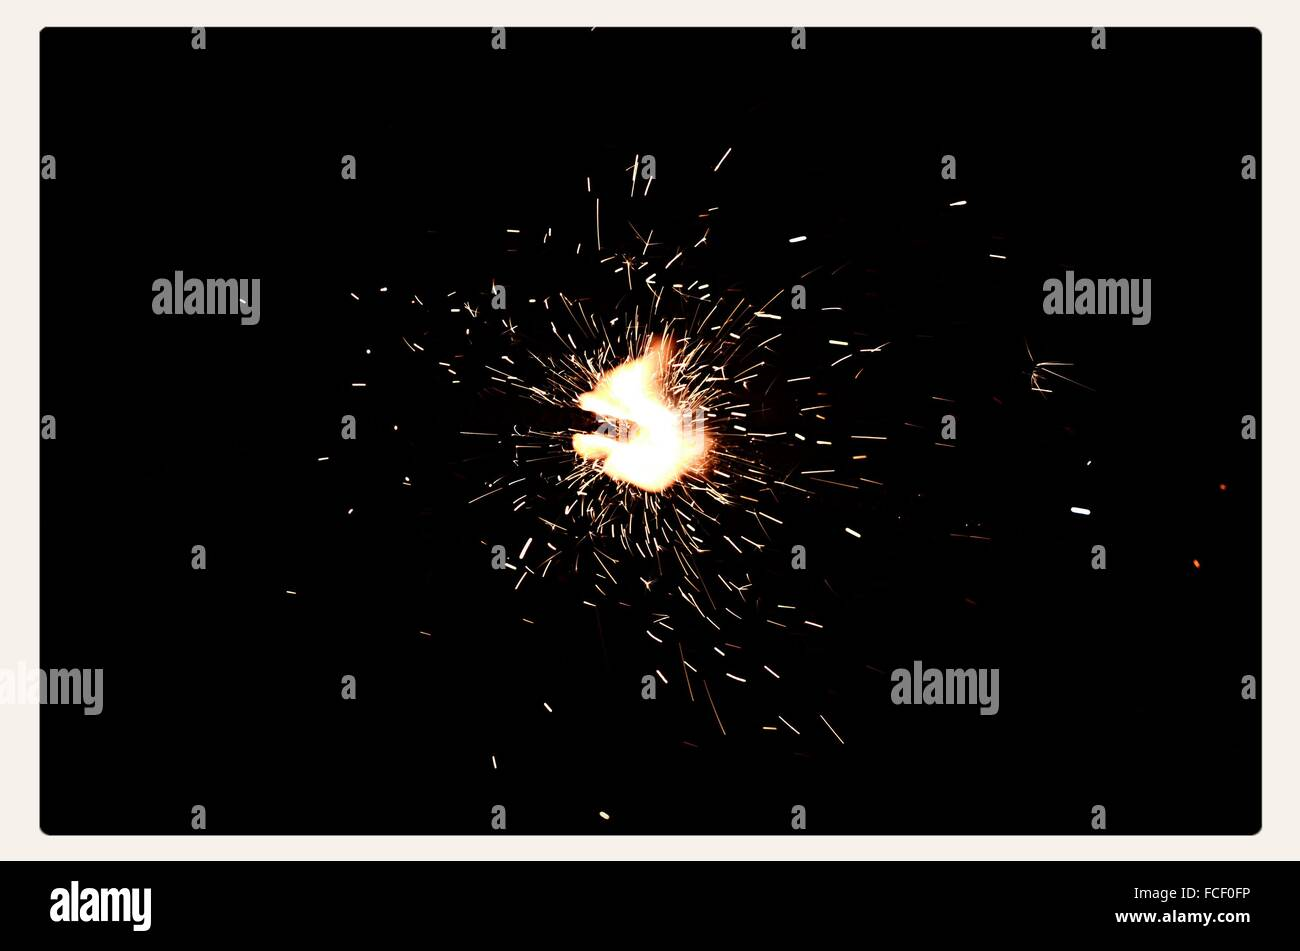 Low Angle View Of Firework Display At Night - Stock Image